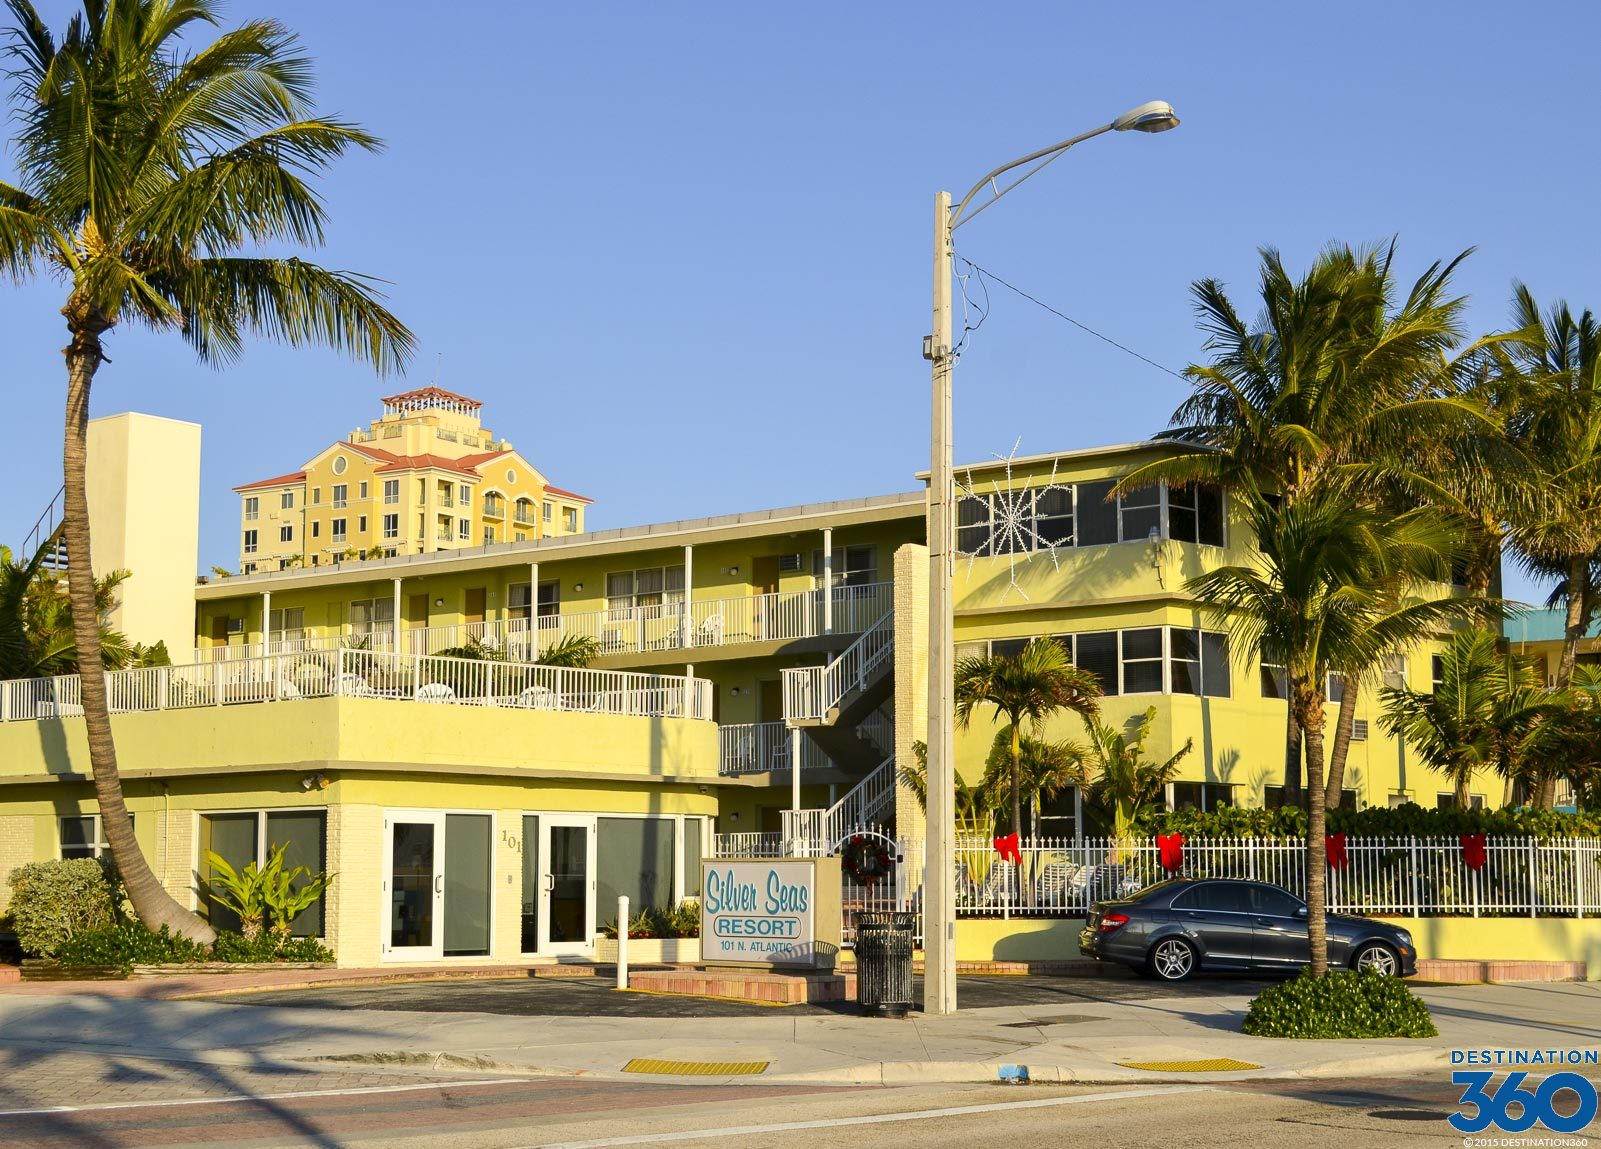 Fort lauderdale cheap hotels fort lauderdale motels for Cheap hotels